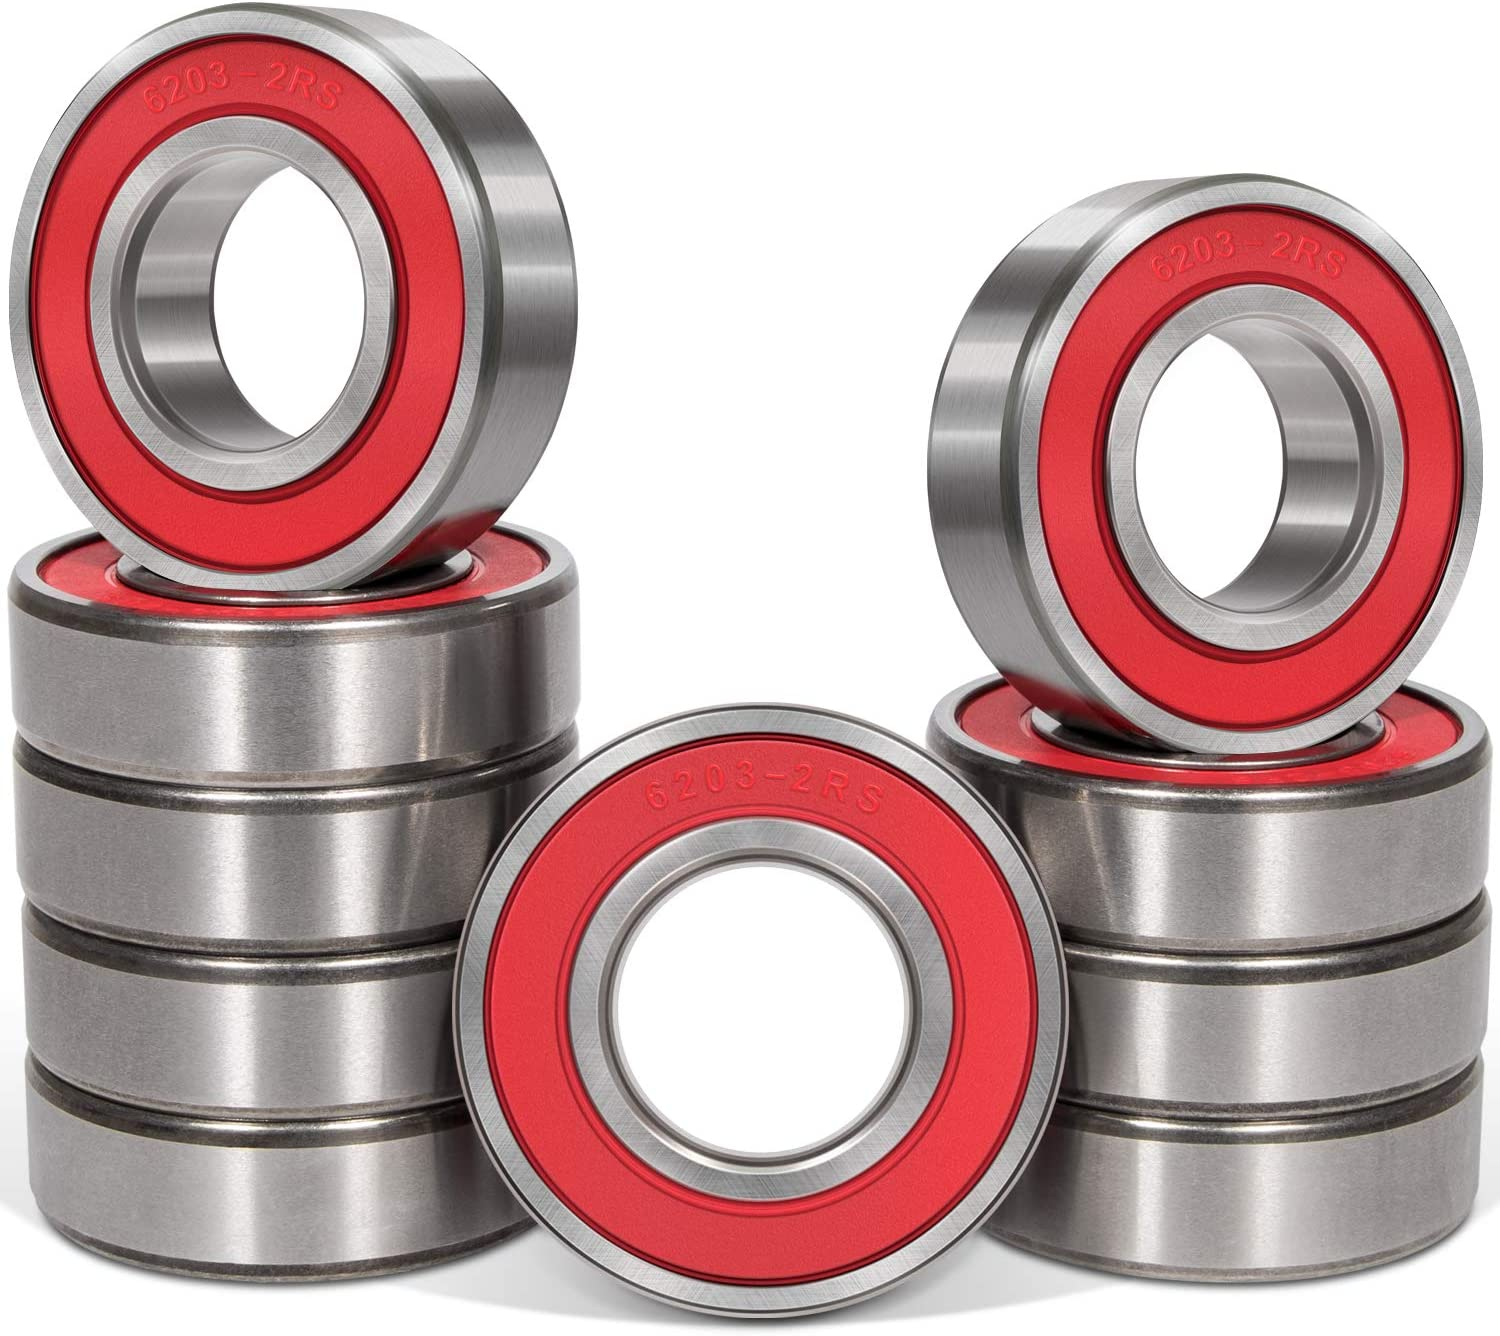 10 Pcs 6203-2RS Ball Bearings (17x40x12mm) Double Rubber Red Seal Bearing, Deep Groove for Garden Machinery,Electric Toys and Tool, etc.